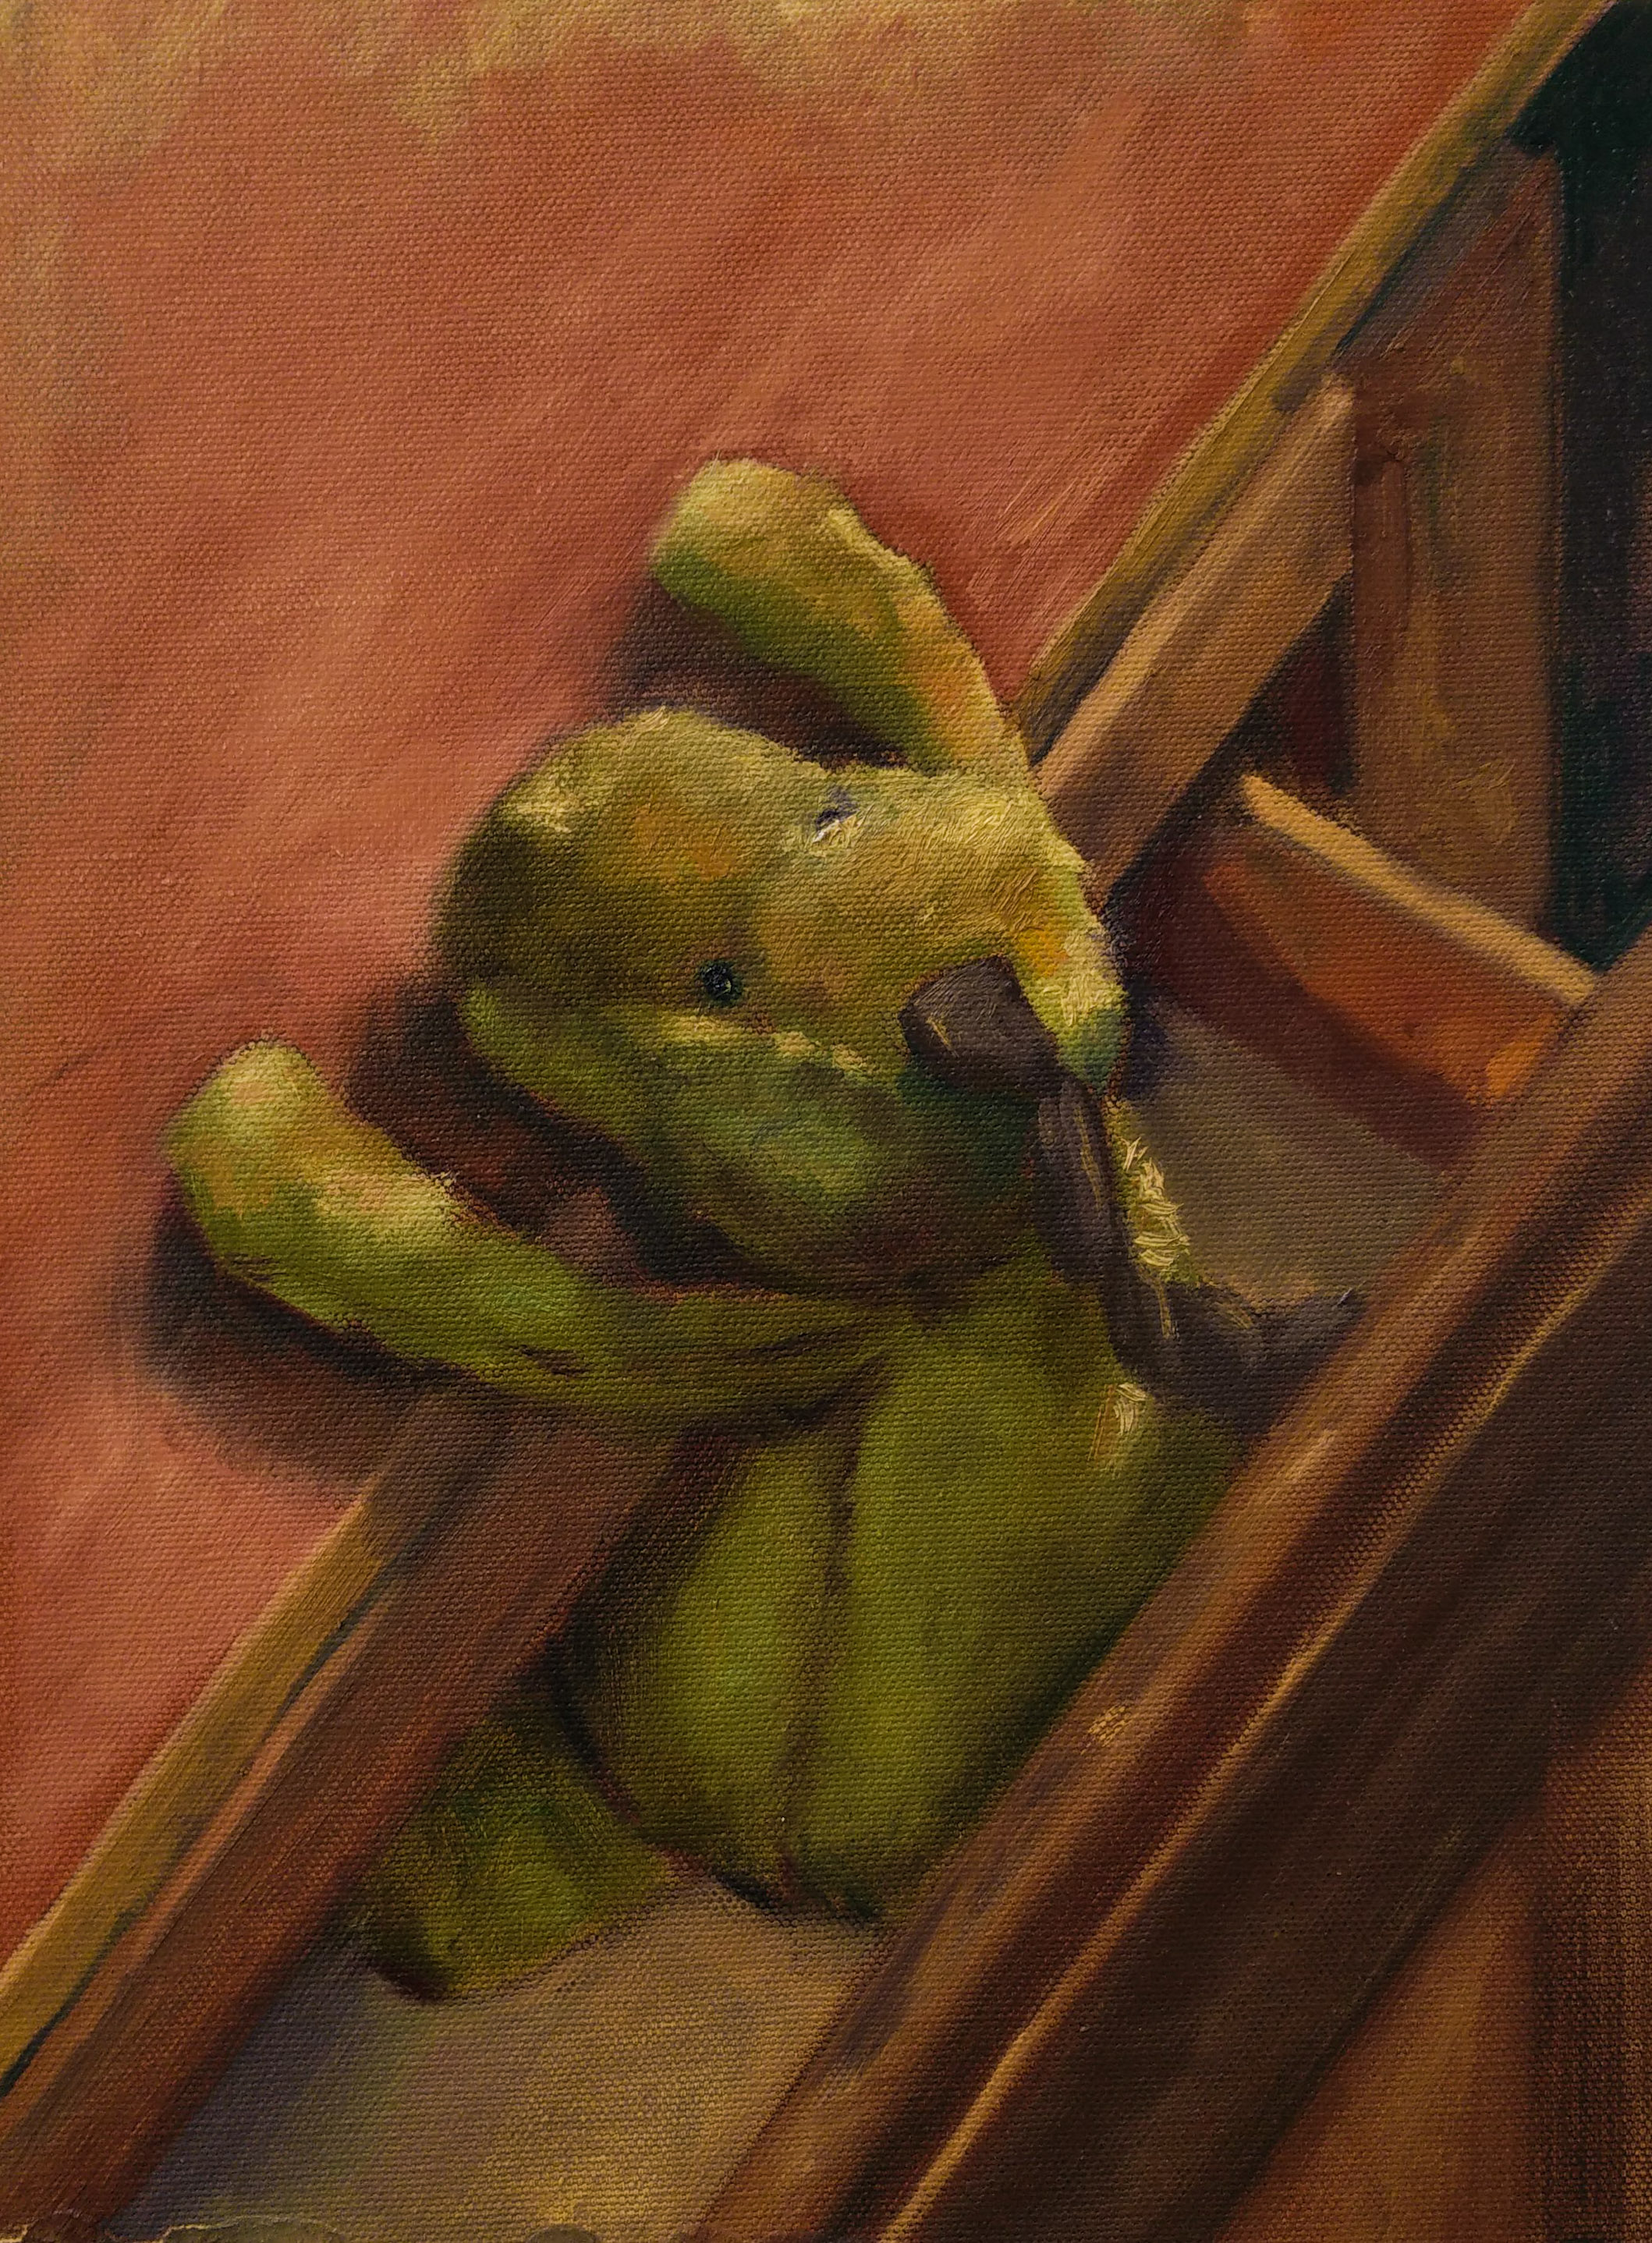 Yearning, 2015, oil on canvas, 12 x 9 inches